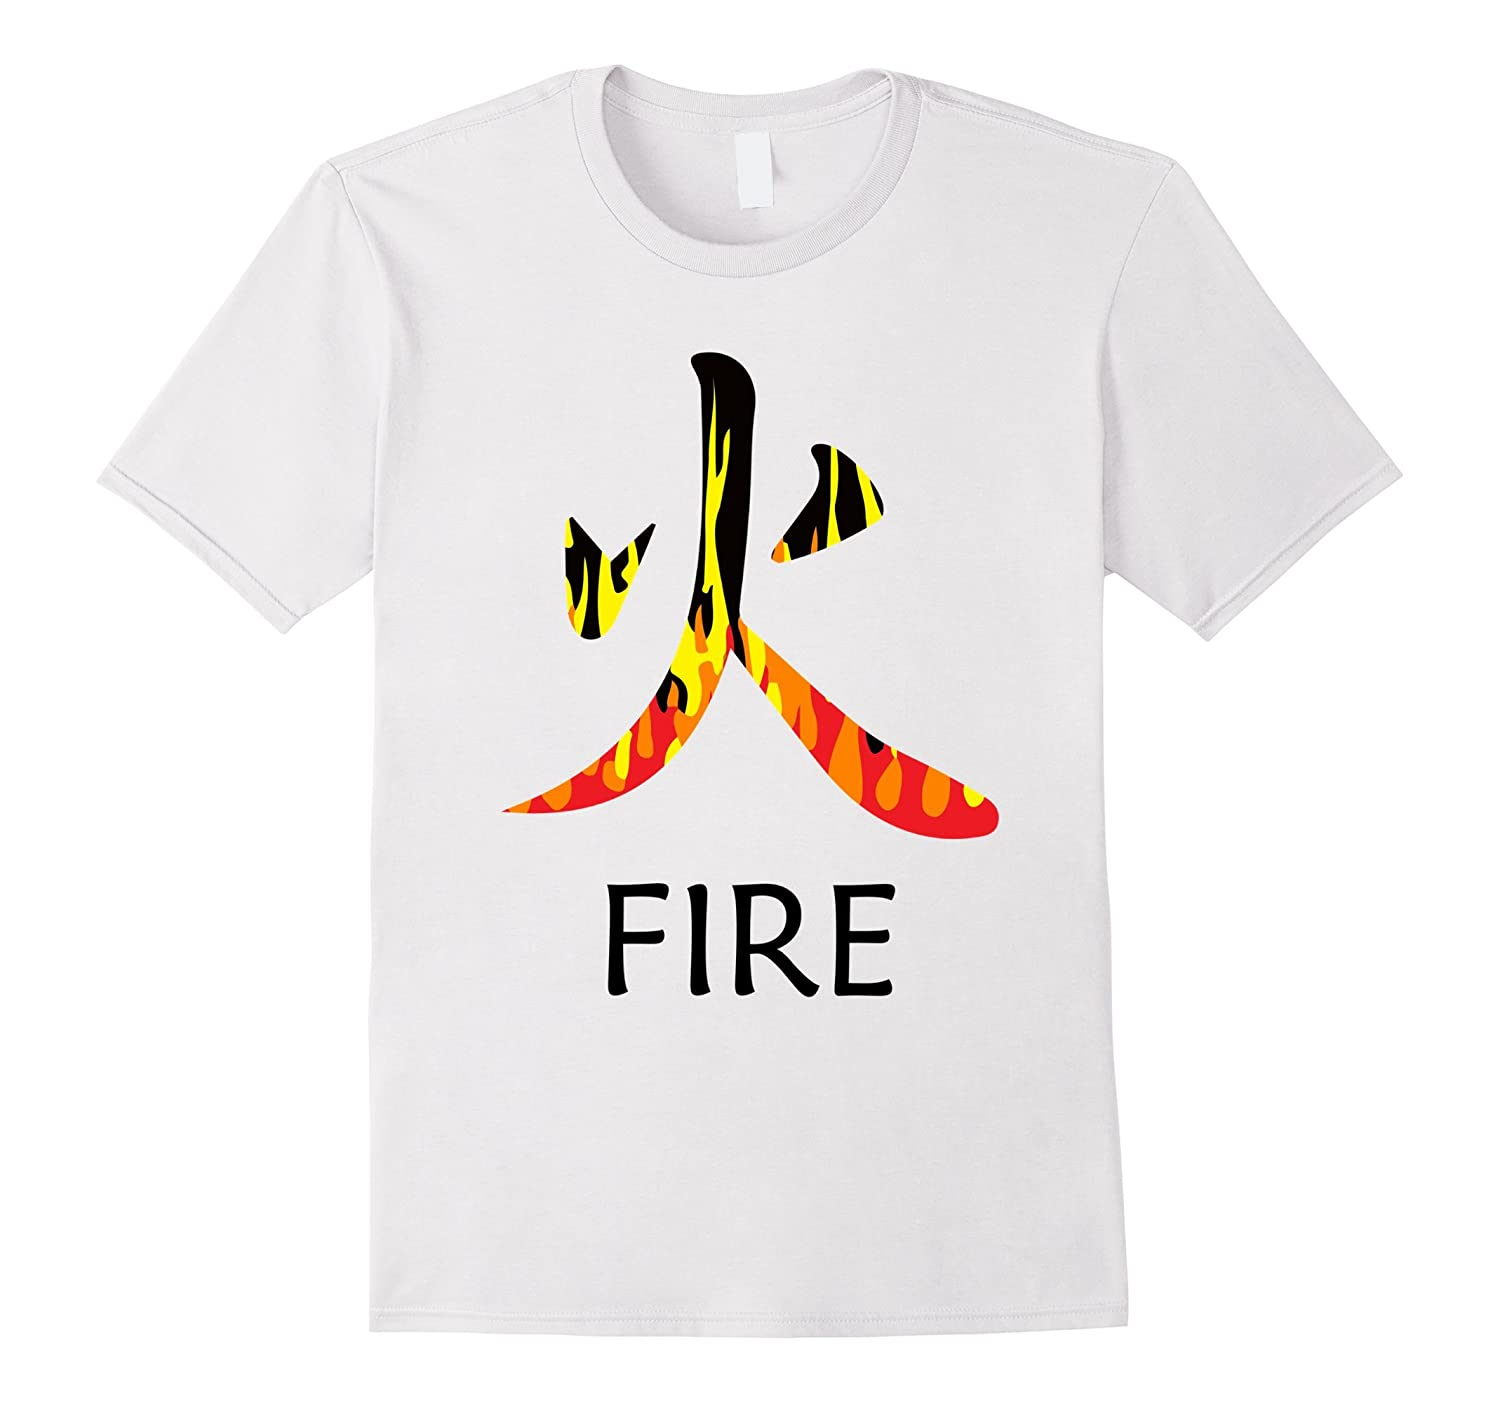 Japanese Symbol For Fire Calligraphy Shirt For Men And Women